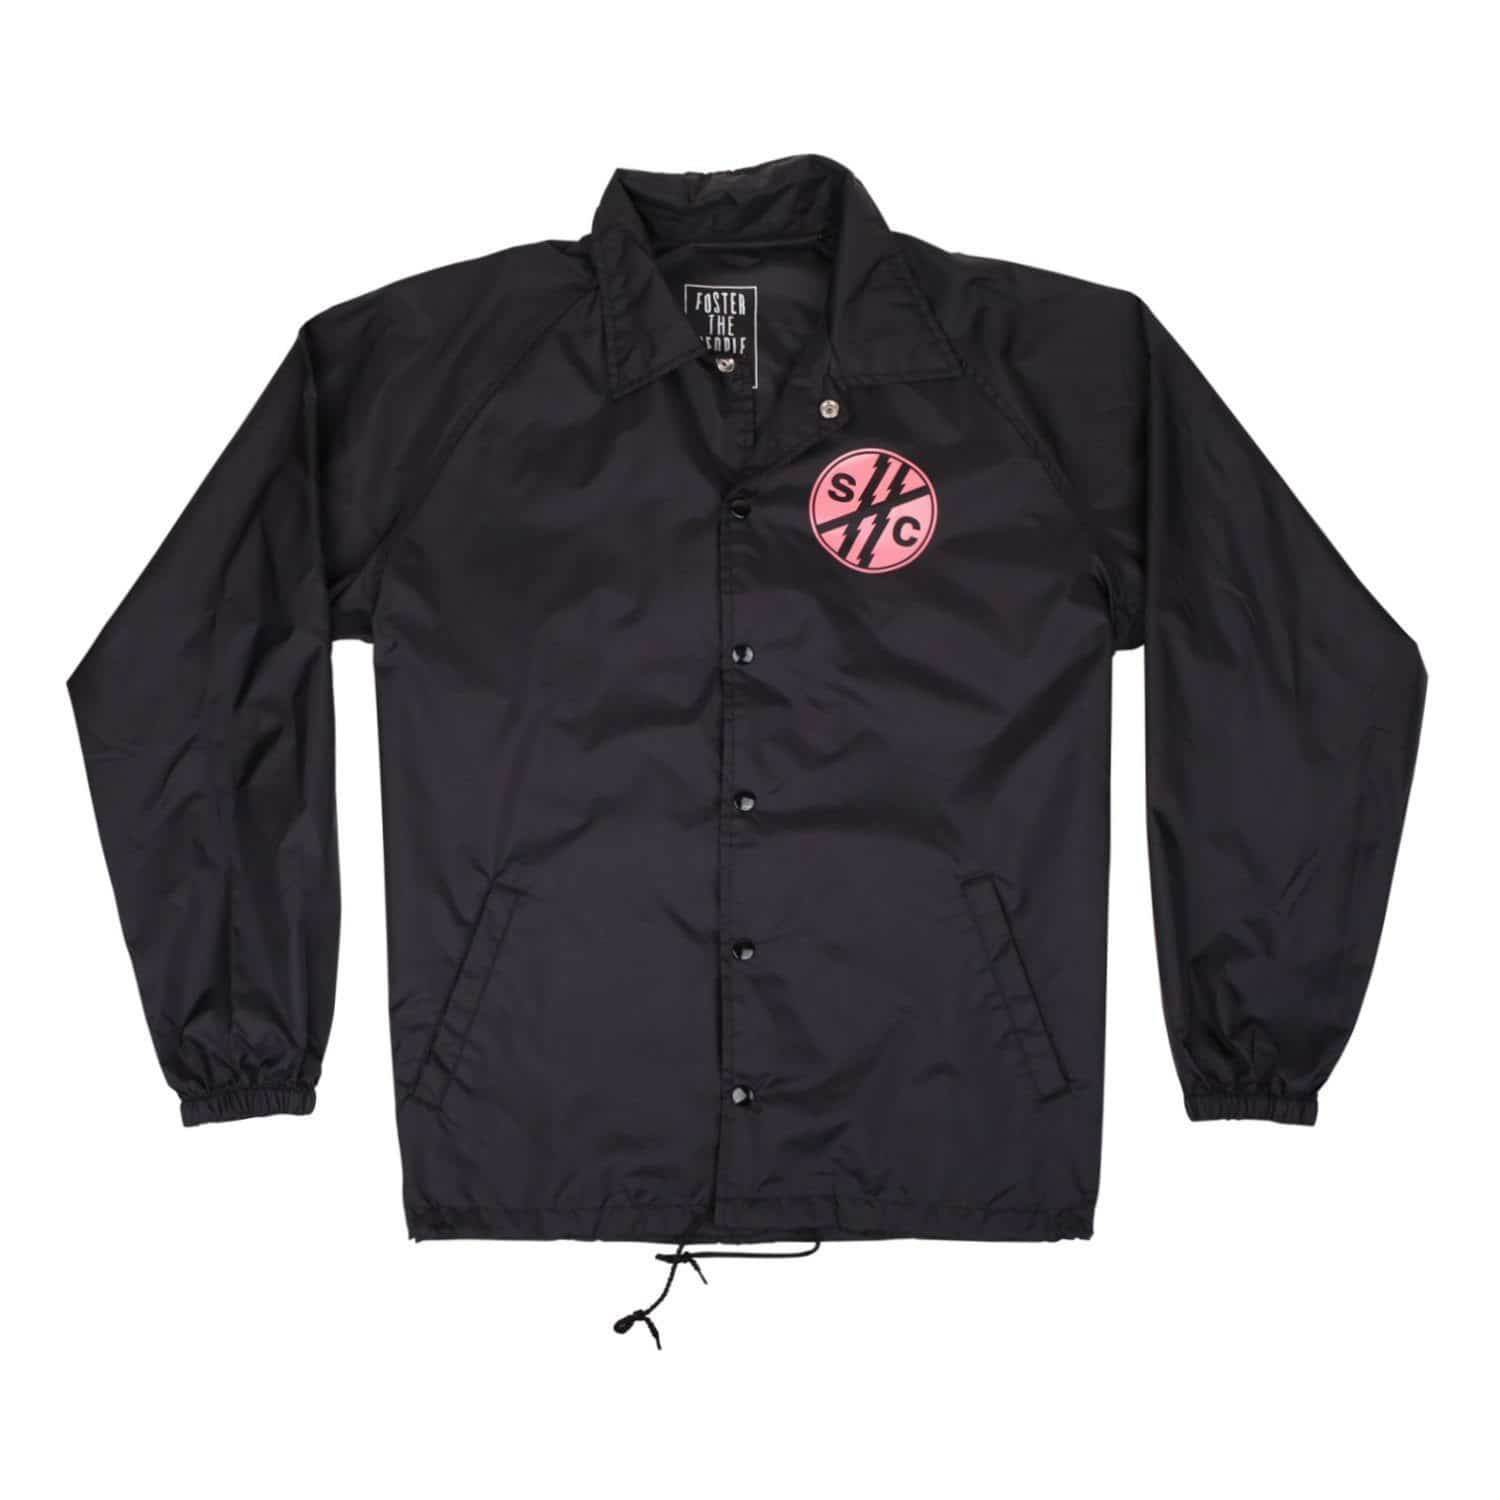 SHC Coaches Jacket